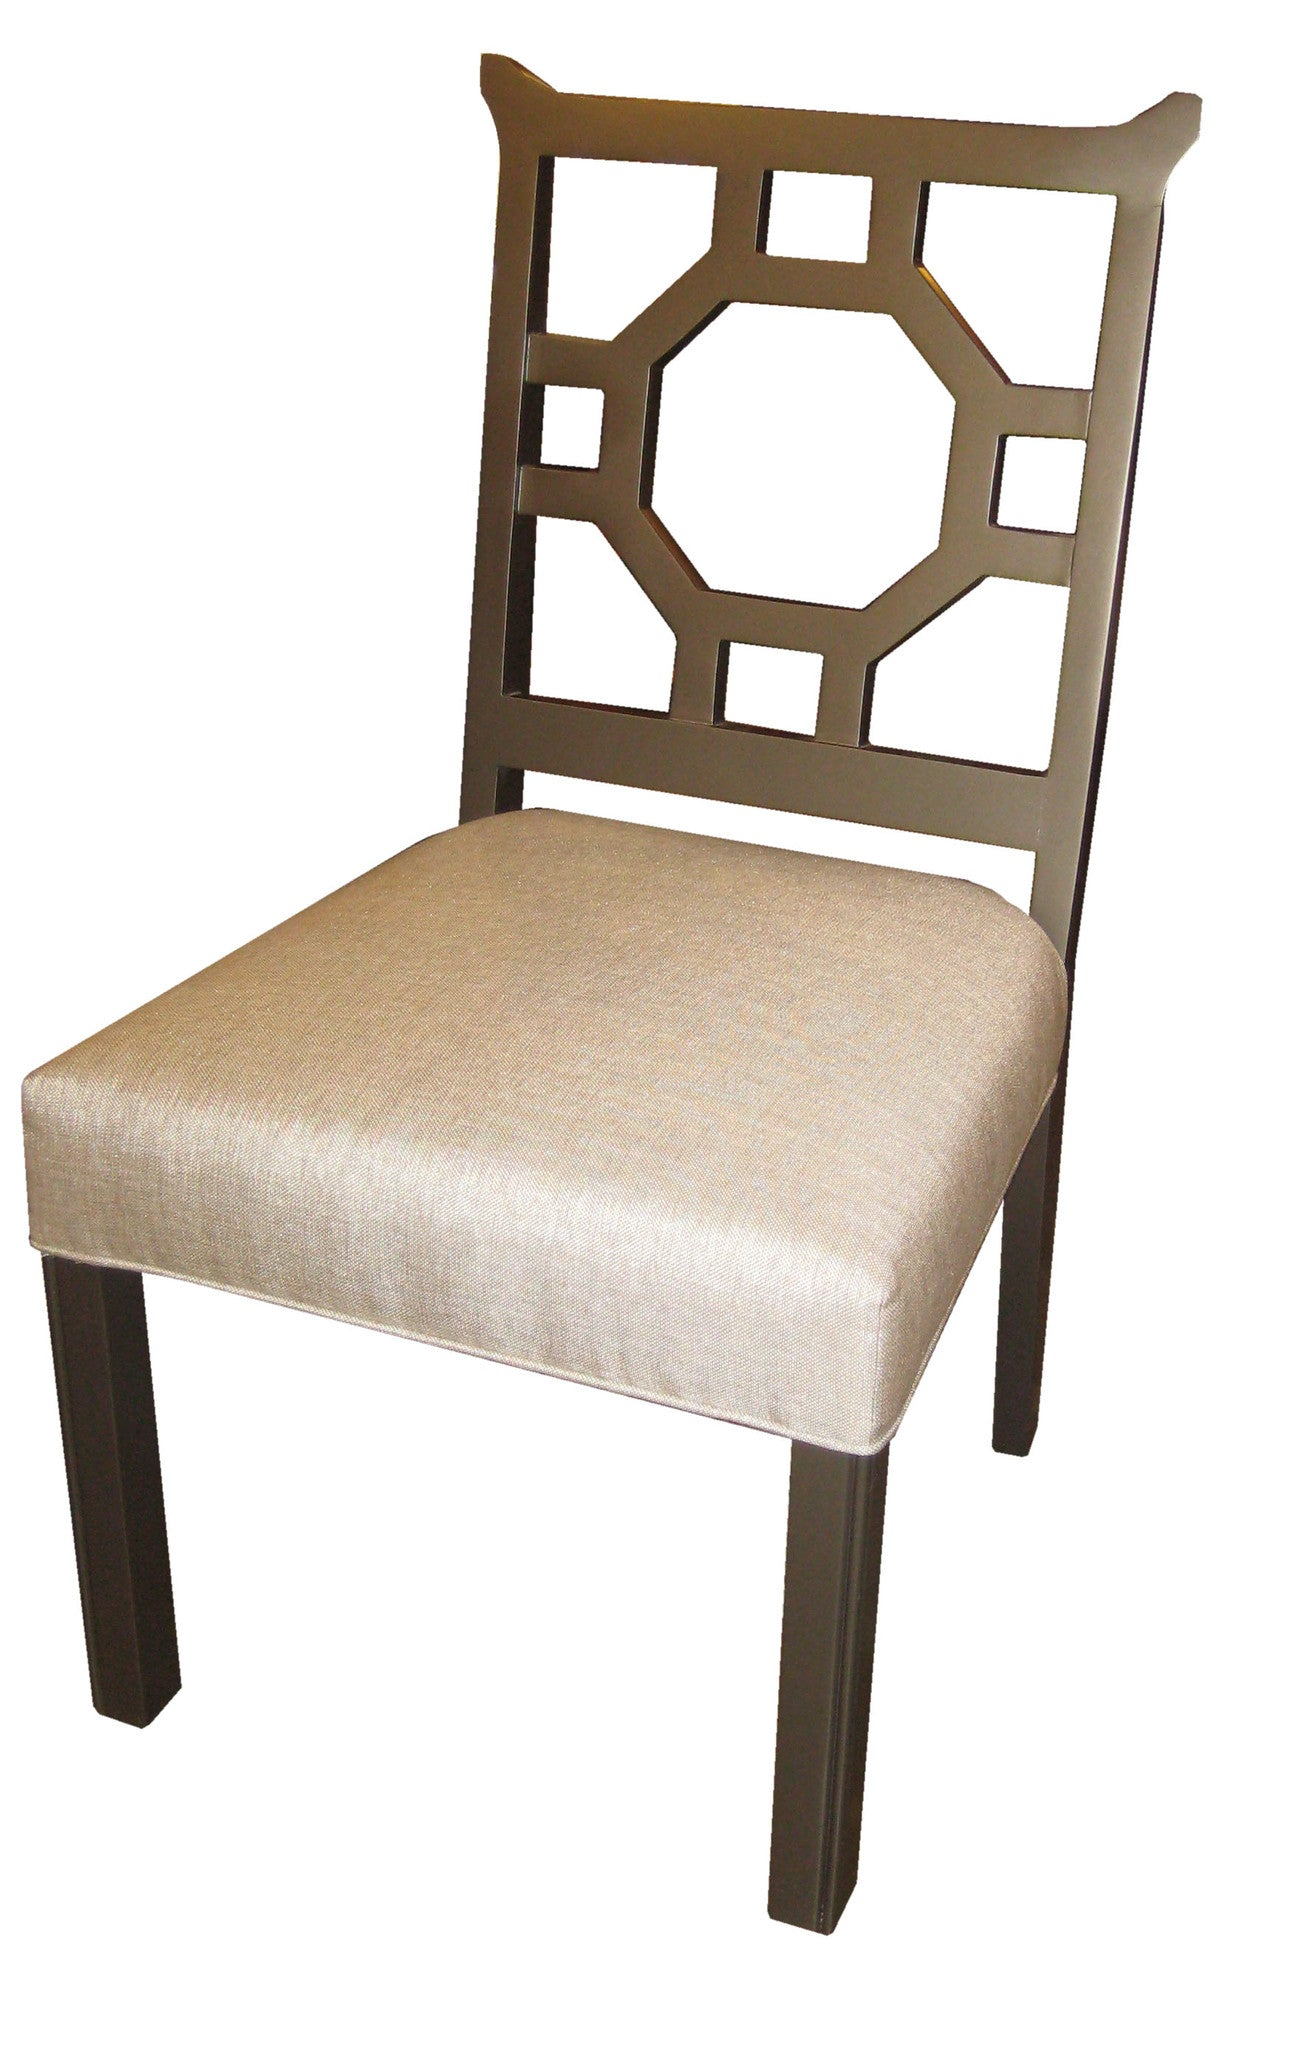 Custom Dining Room Chairs For Every Home Interior Design Style From Modern Chairs Upholstered Chairs Leather And Tufted Chairs Mortise Tenon